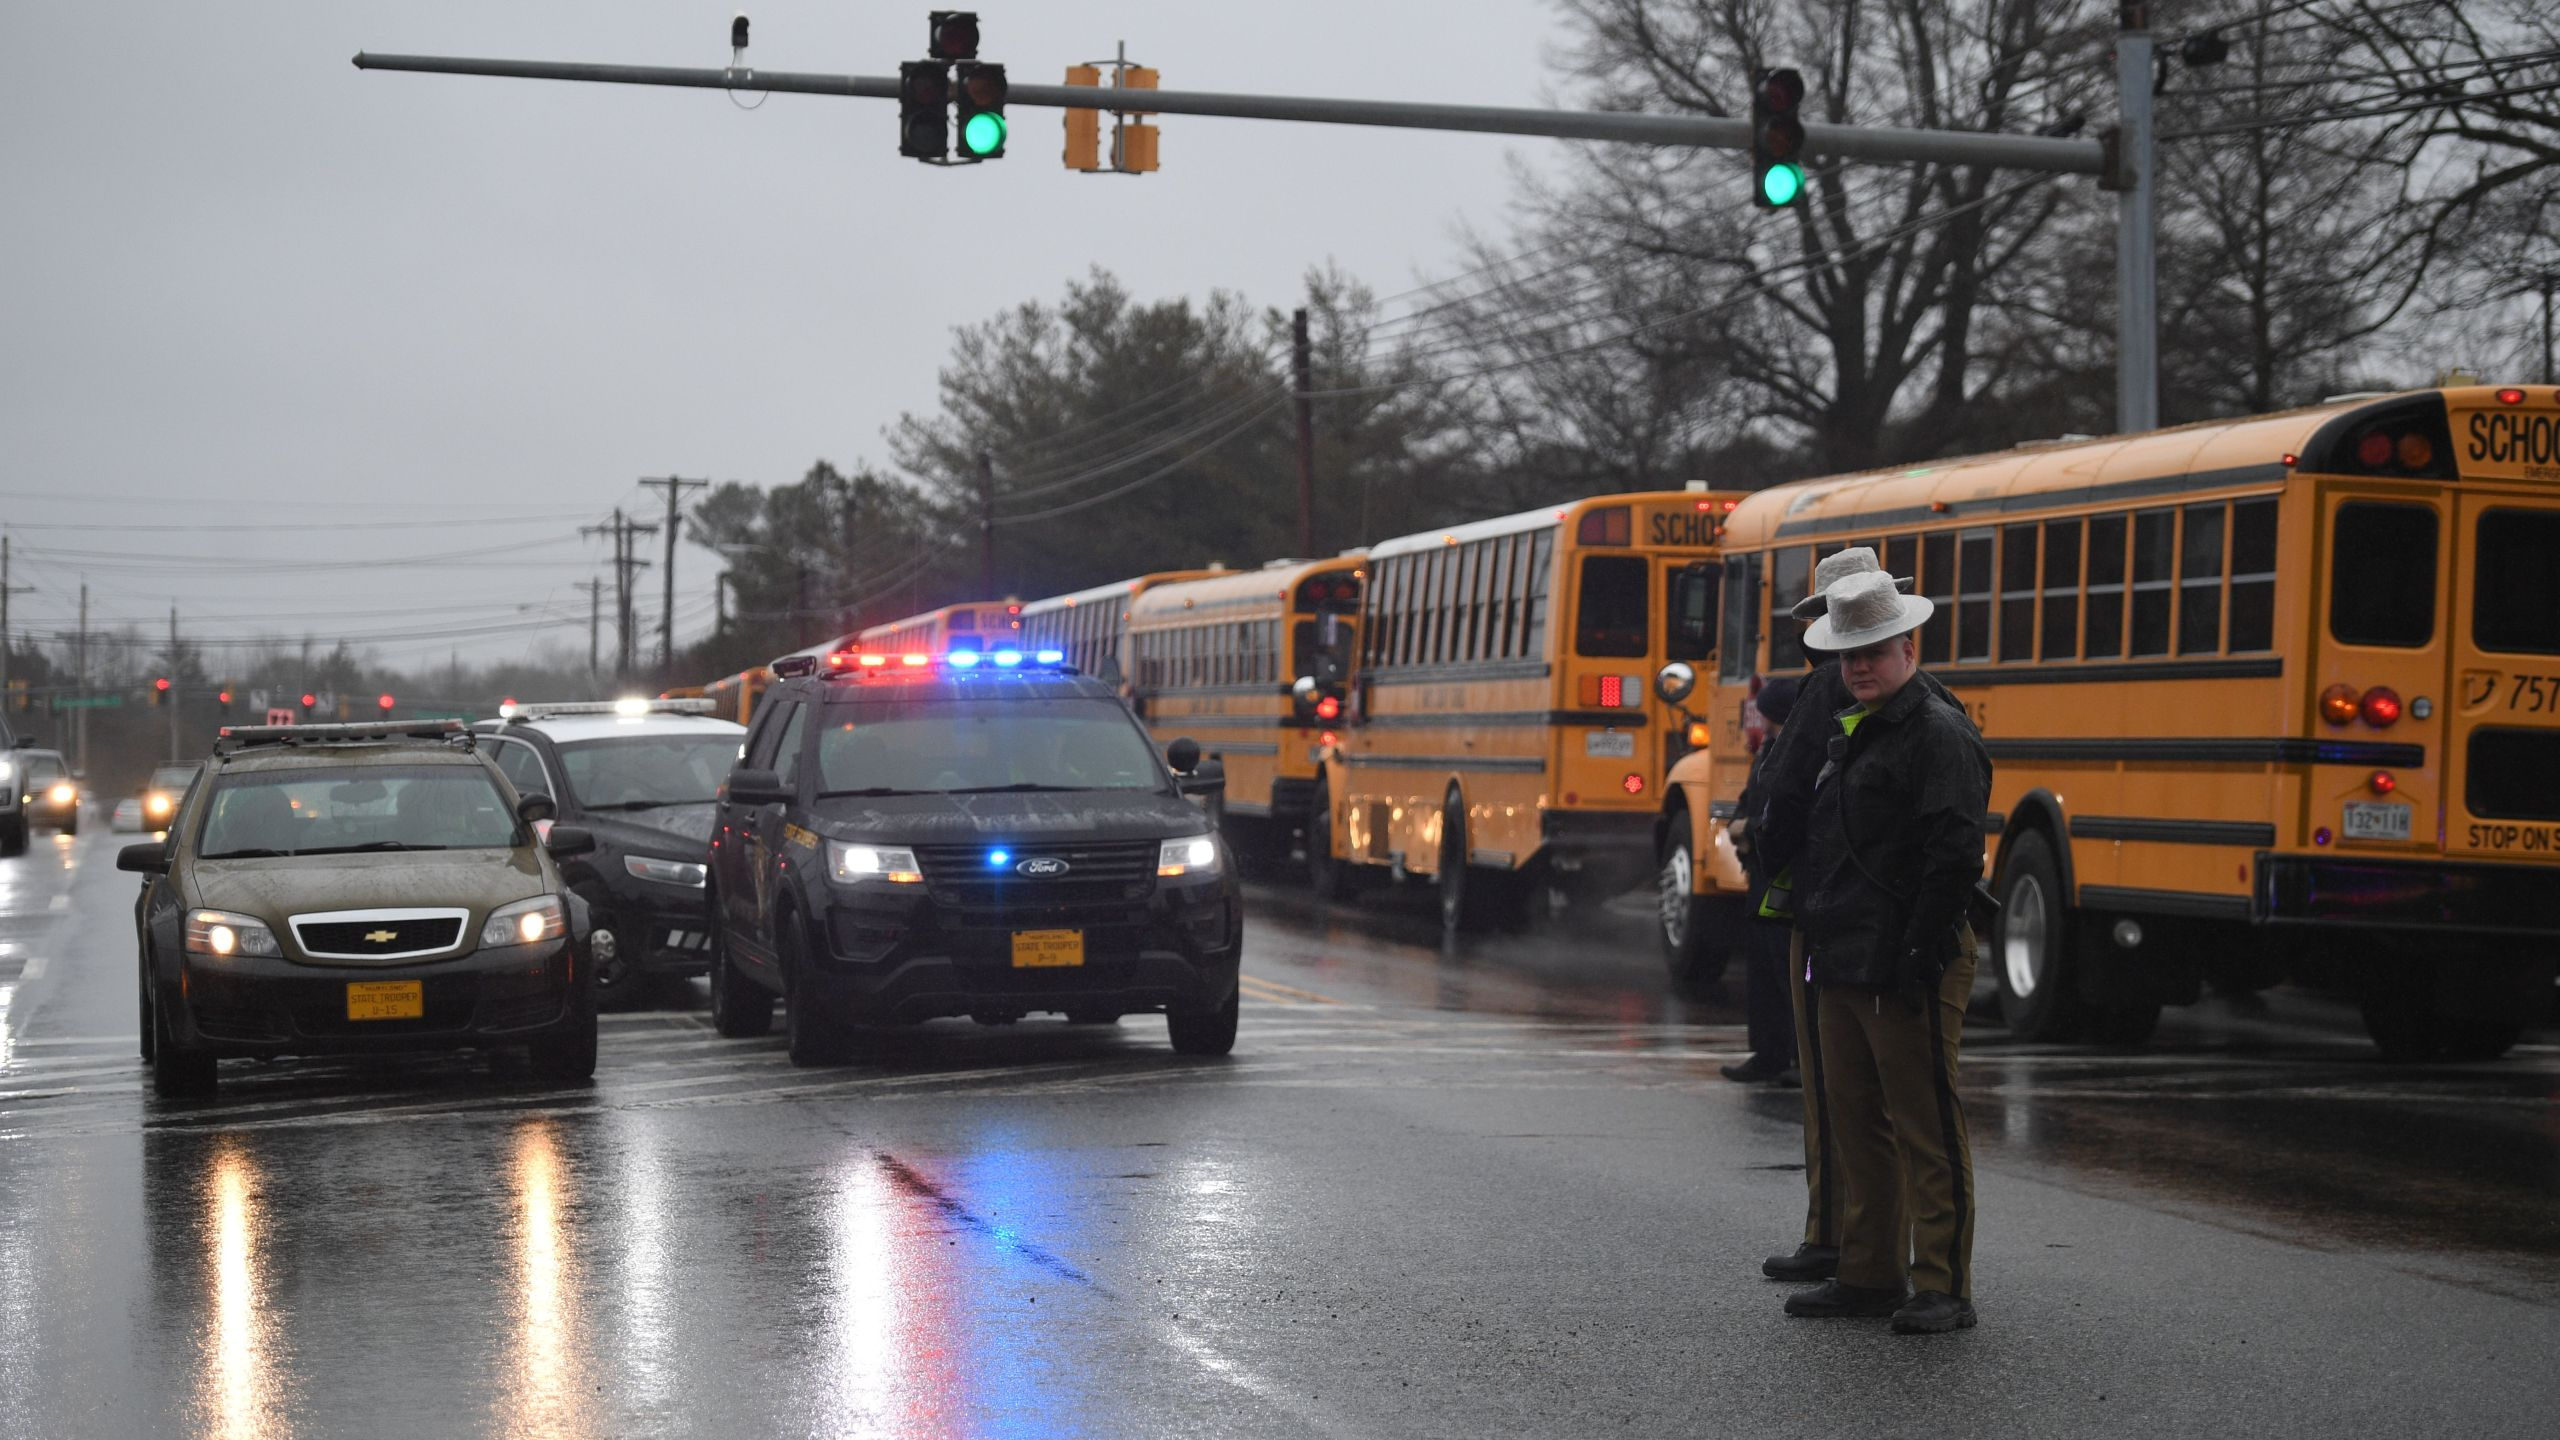 School buses, security and State Troopers are seen on March 20, 2018 at Great Mills High School in Great Mills, Maryland after a shooting at the school. (Credit: JIM WATSON/AFP/Getty Images)